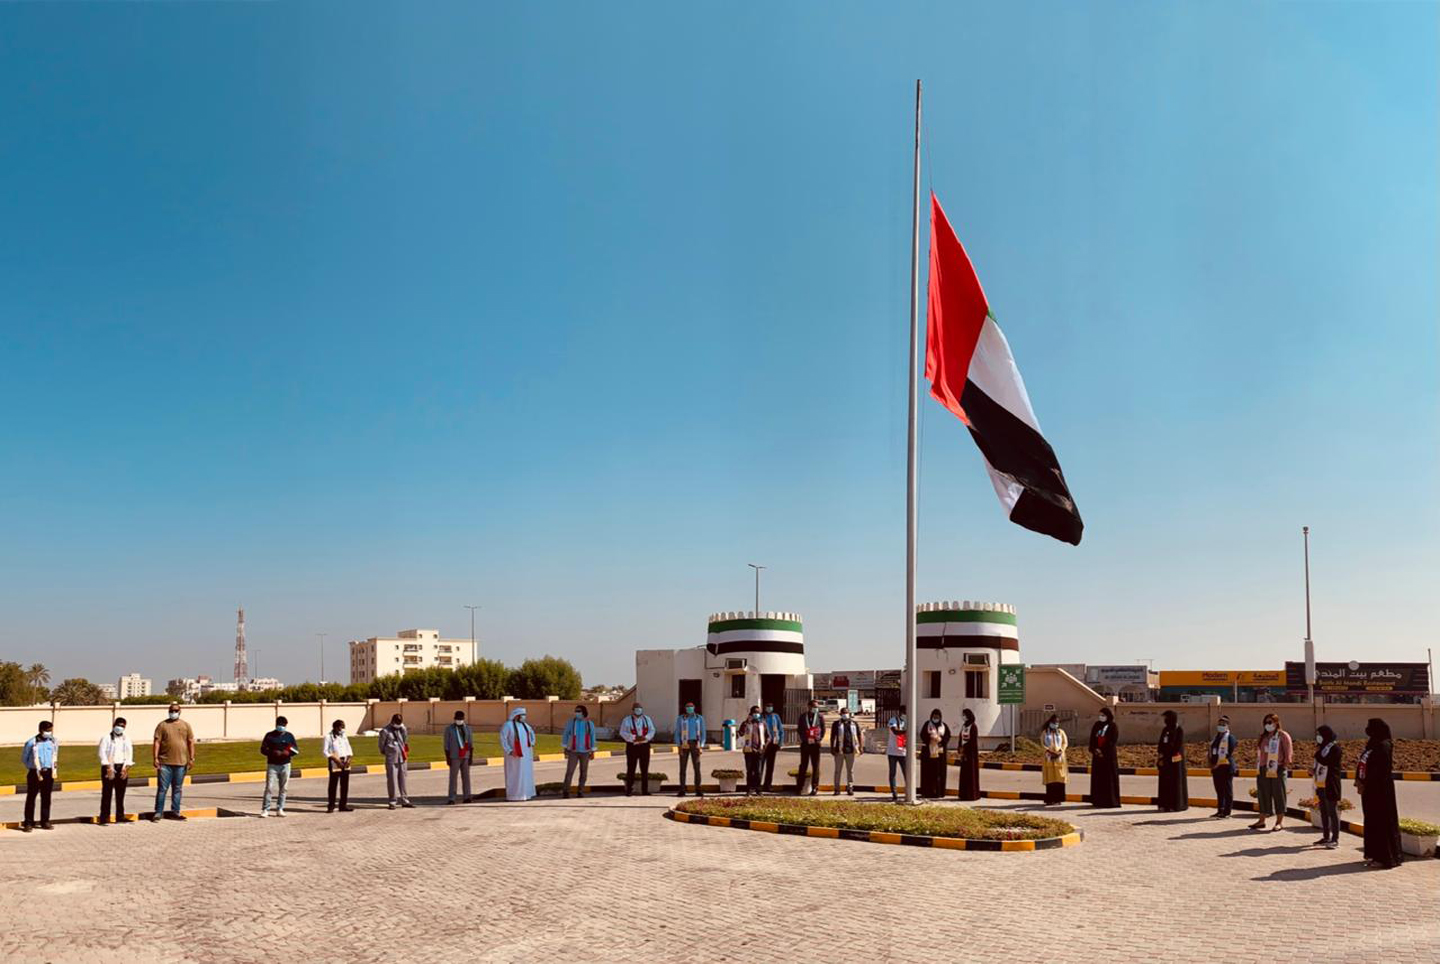 Umm Al Quwain Broadcasting Network celebrated the Flag Day 3rd November 2020. Employees of all nationalities gathered to participate in the celebration of the national occasion of the UAE.